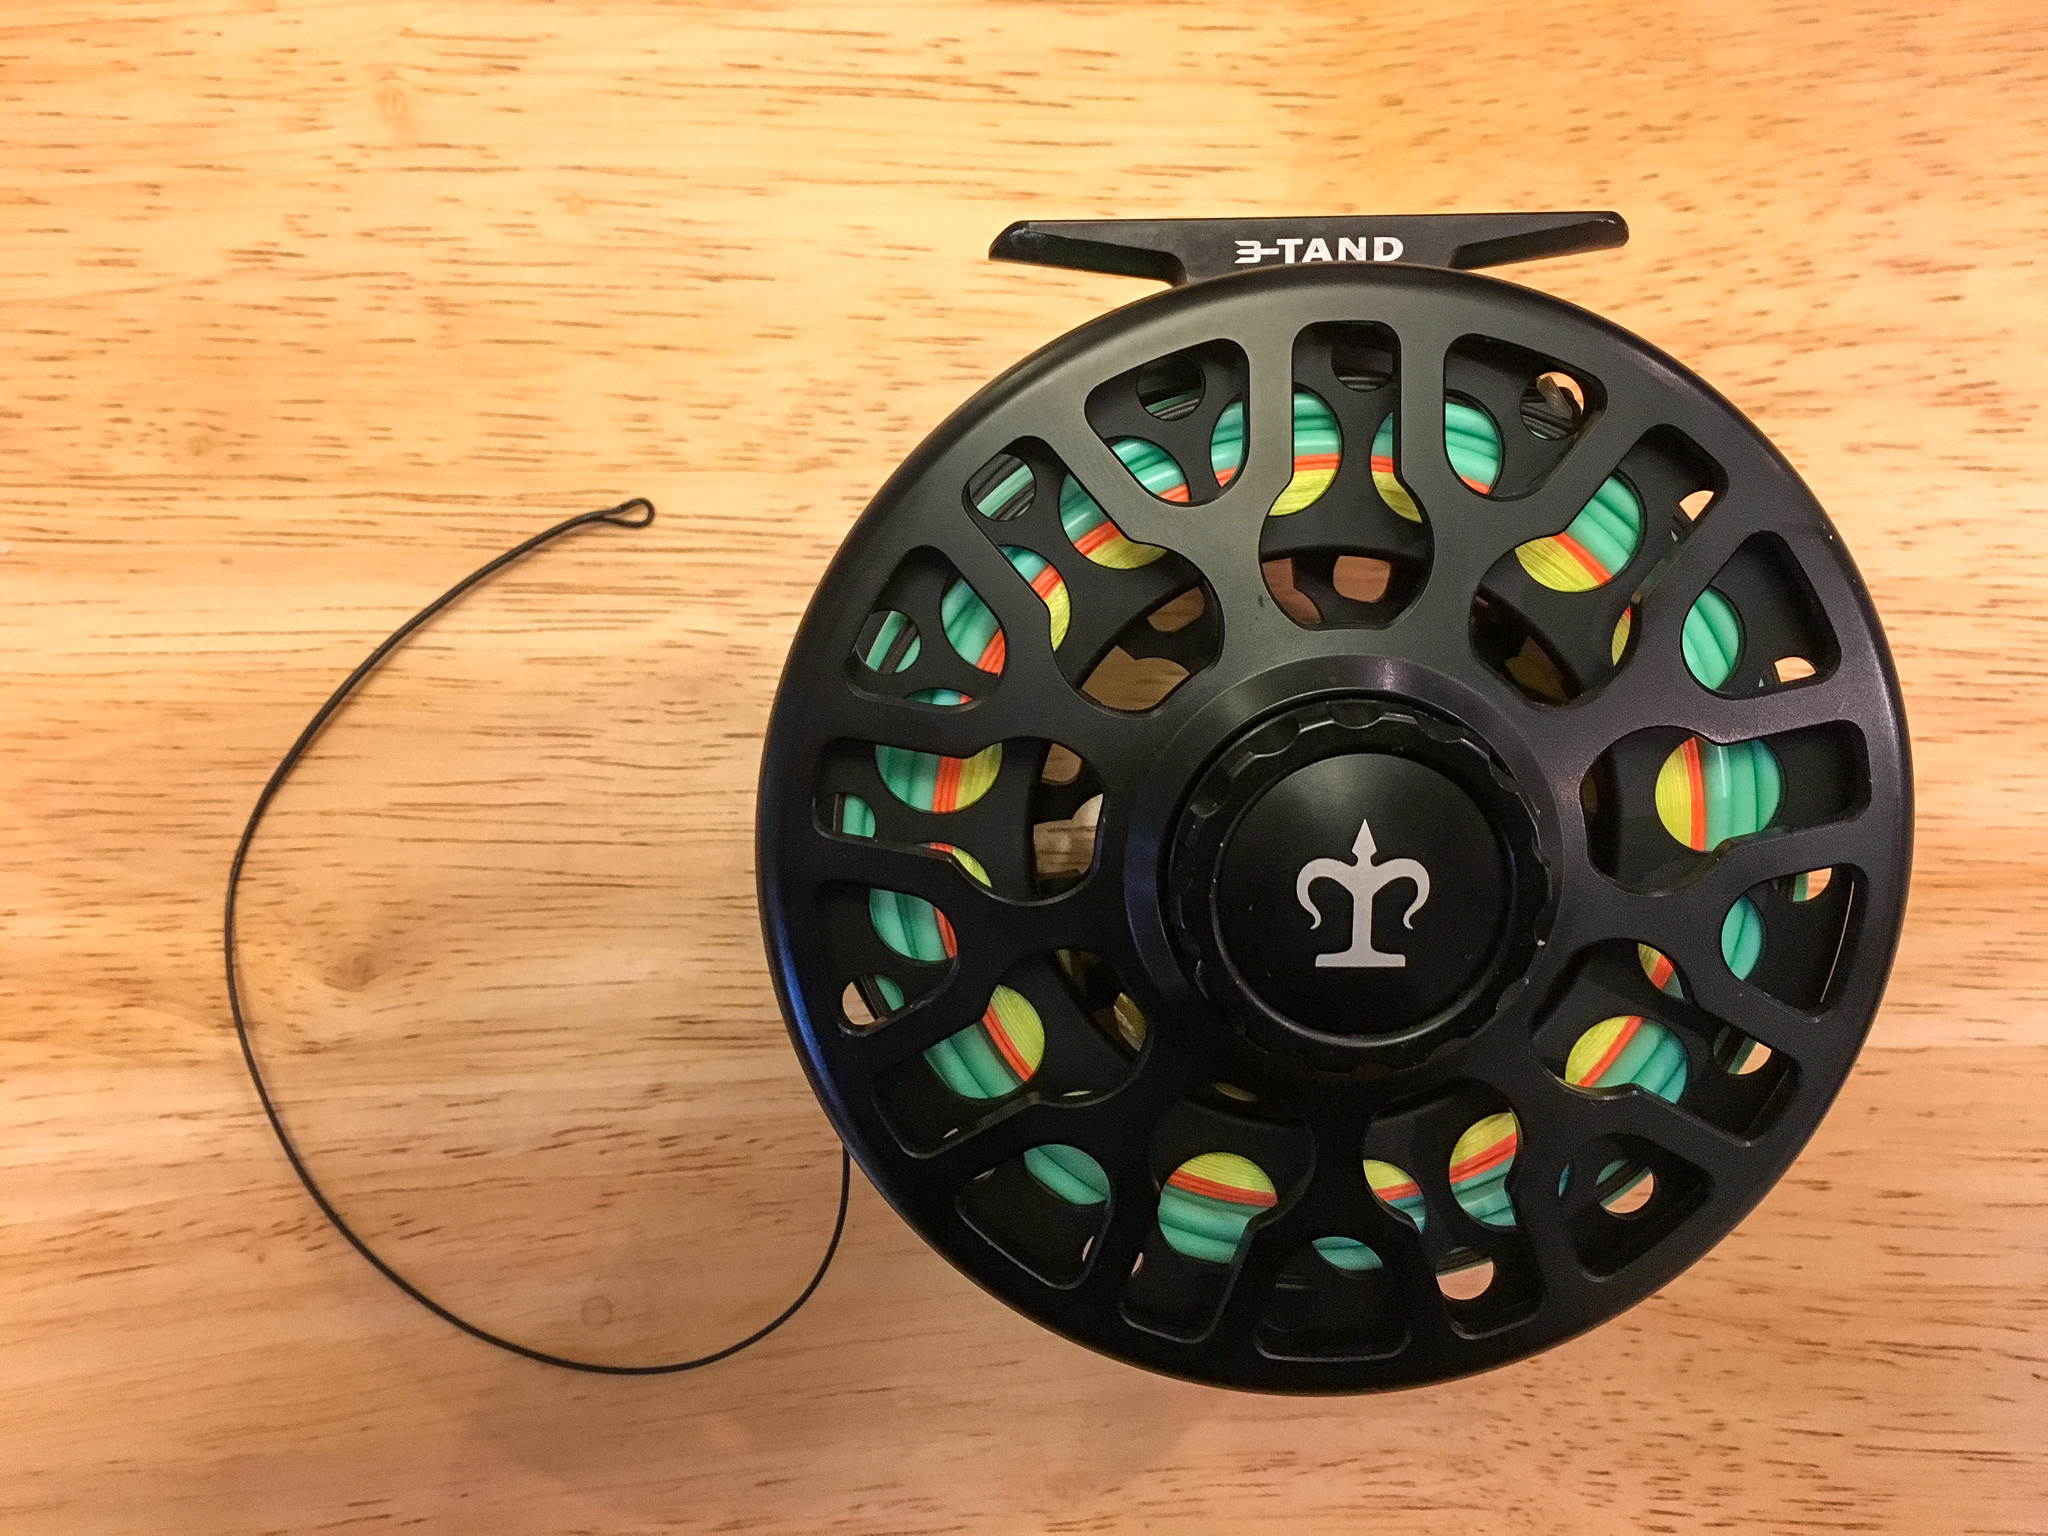 Spey reel loaded with a Skagit line system. From inside to outside: Yellow = backing, Orange = running line, Mint Green = Skagit Head, Black = Tip.